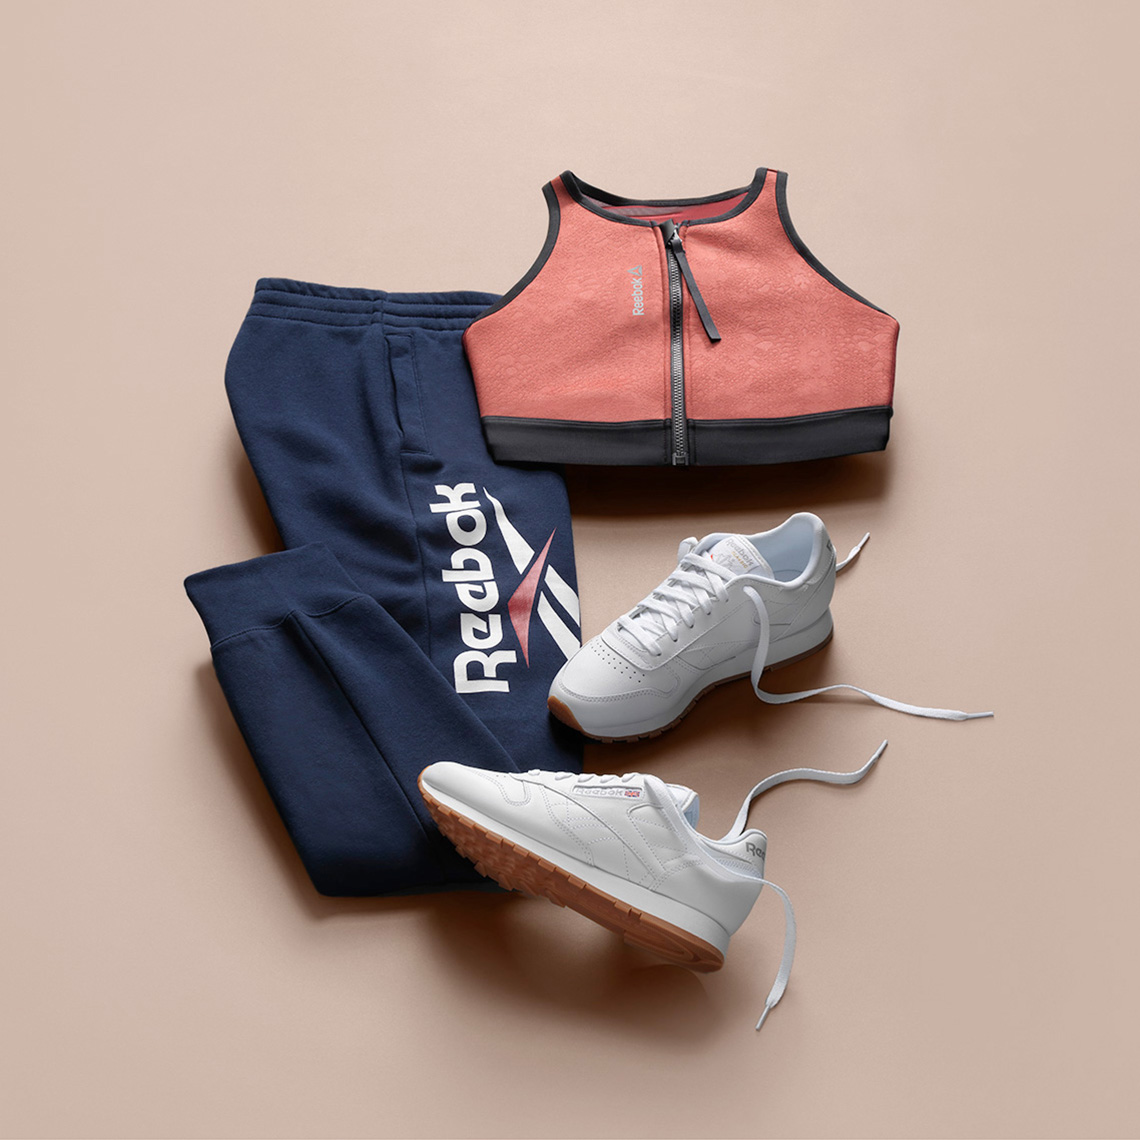 reebok classics workout outfit on a peach background